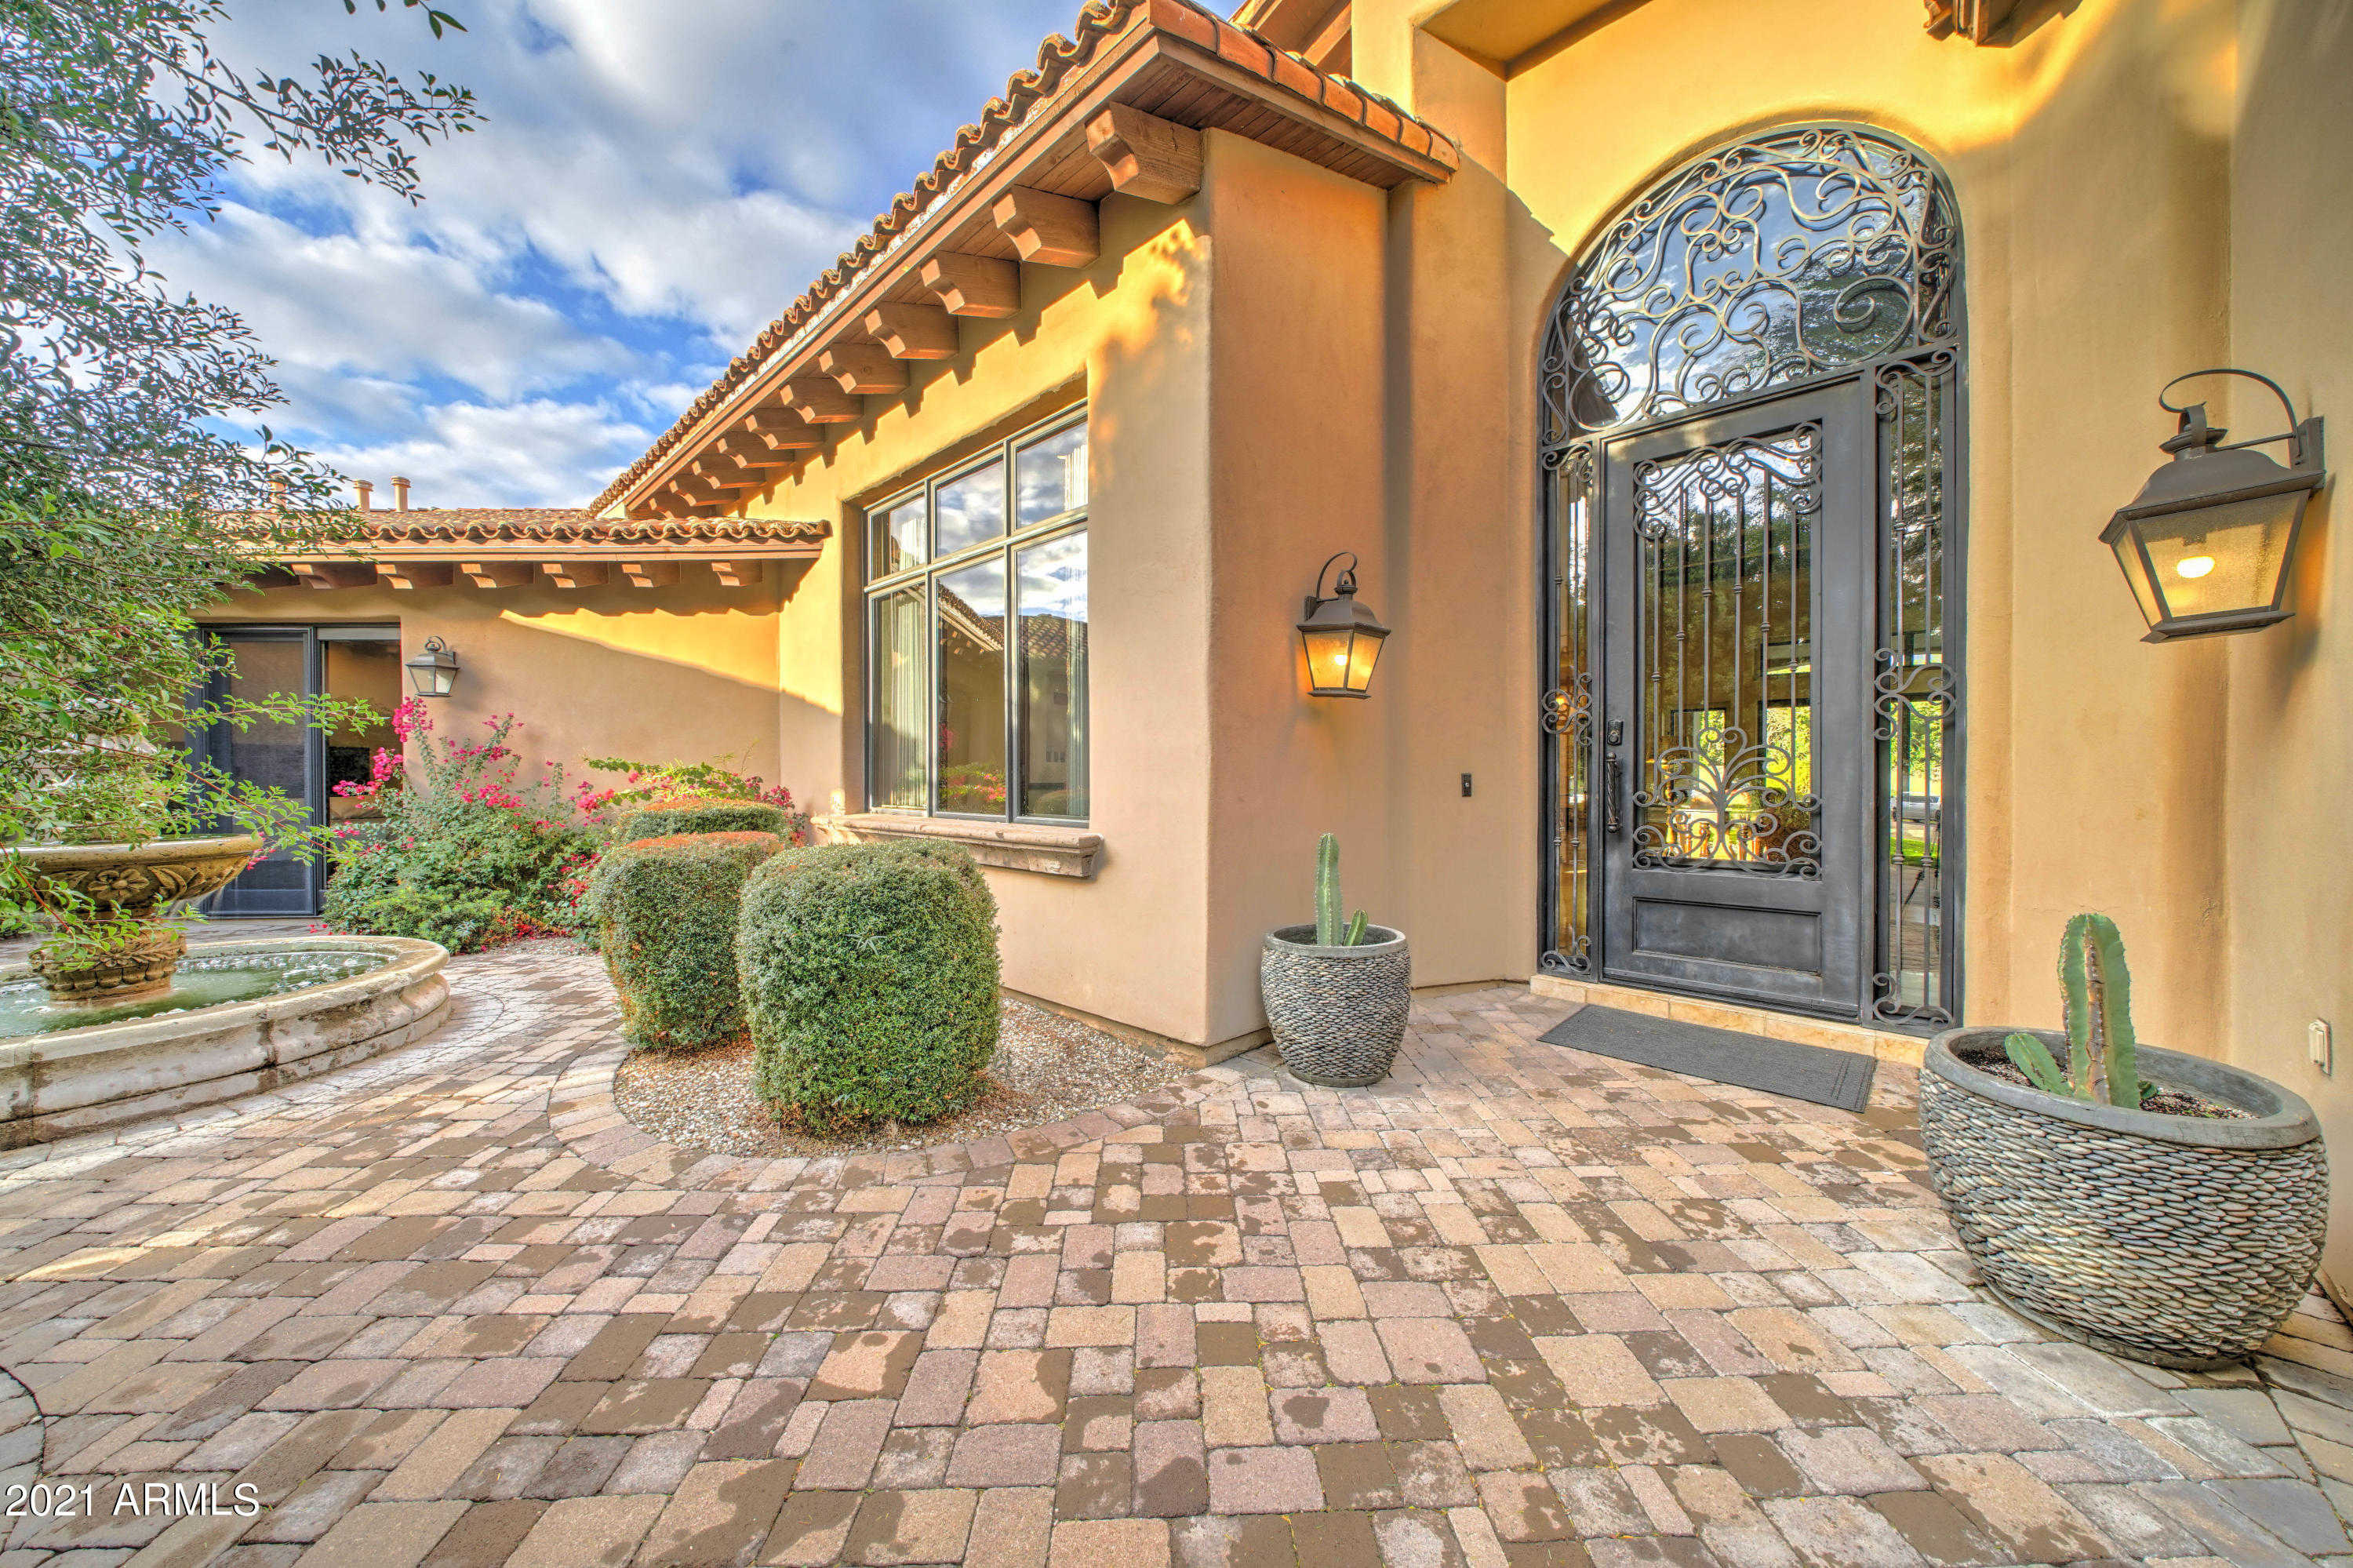 $3,750,000 - 5Br/6Ba - Home for Sale in Mockingbird Lane Estates 4, Paradise Valley